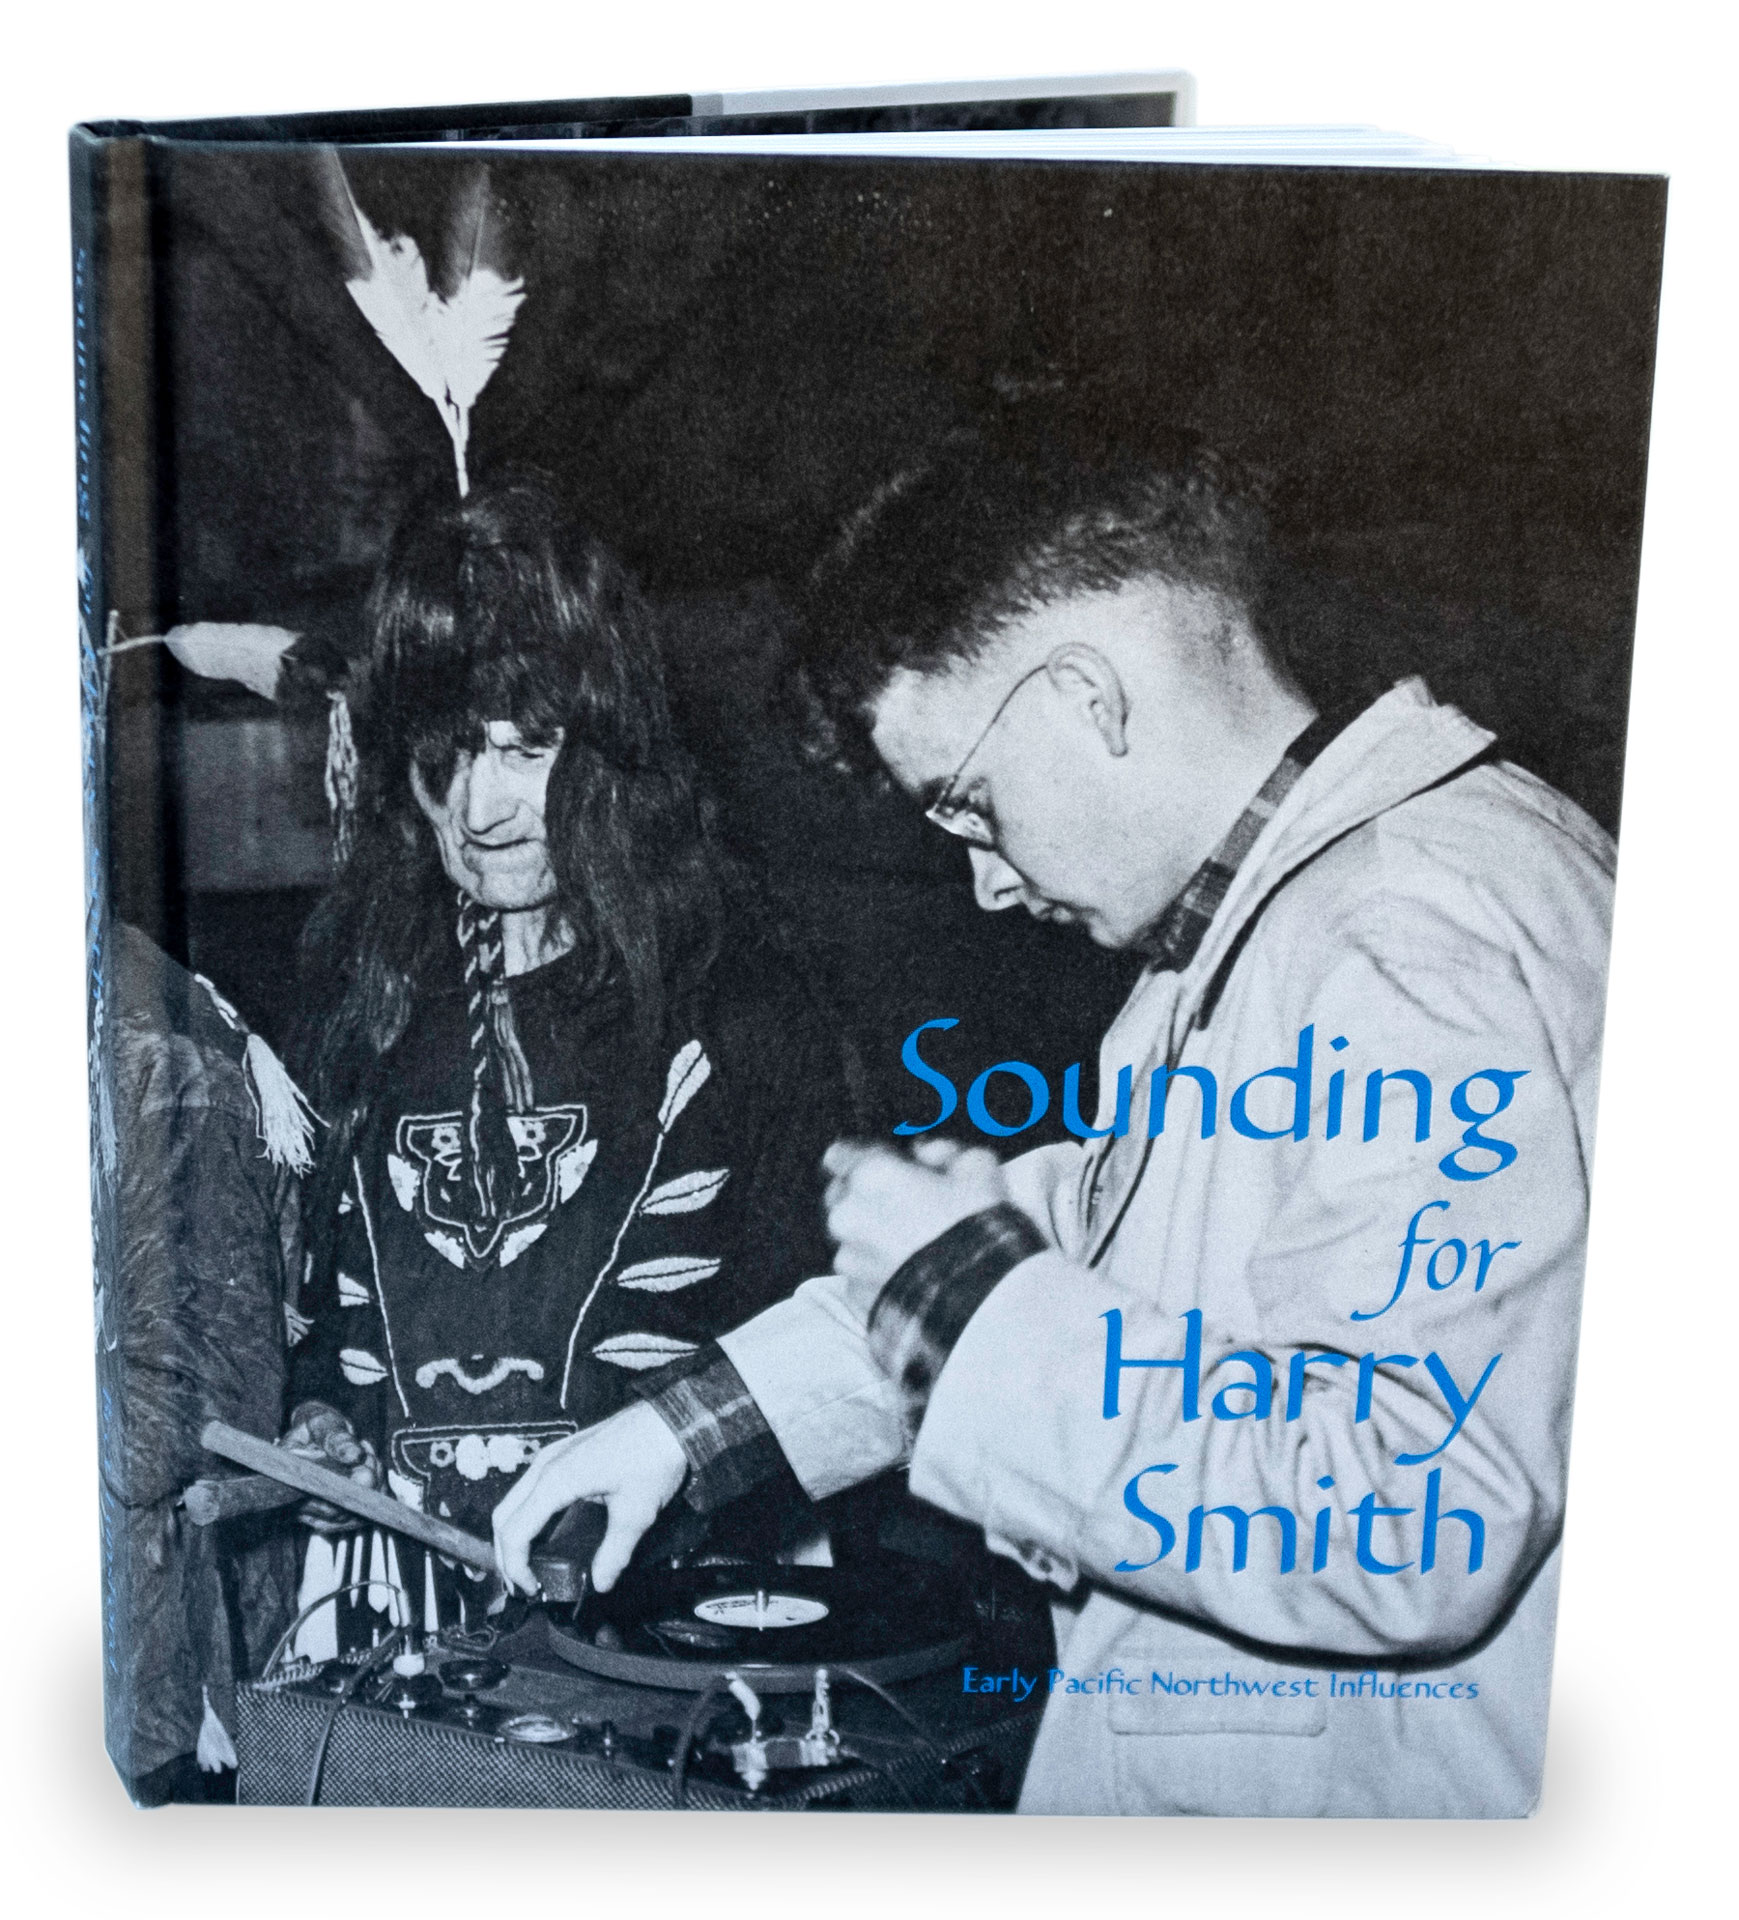 Publication: Sounding for Harry Smith: Early Pacific Northwest Influences by Bret Lunsford